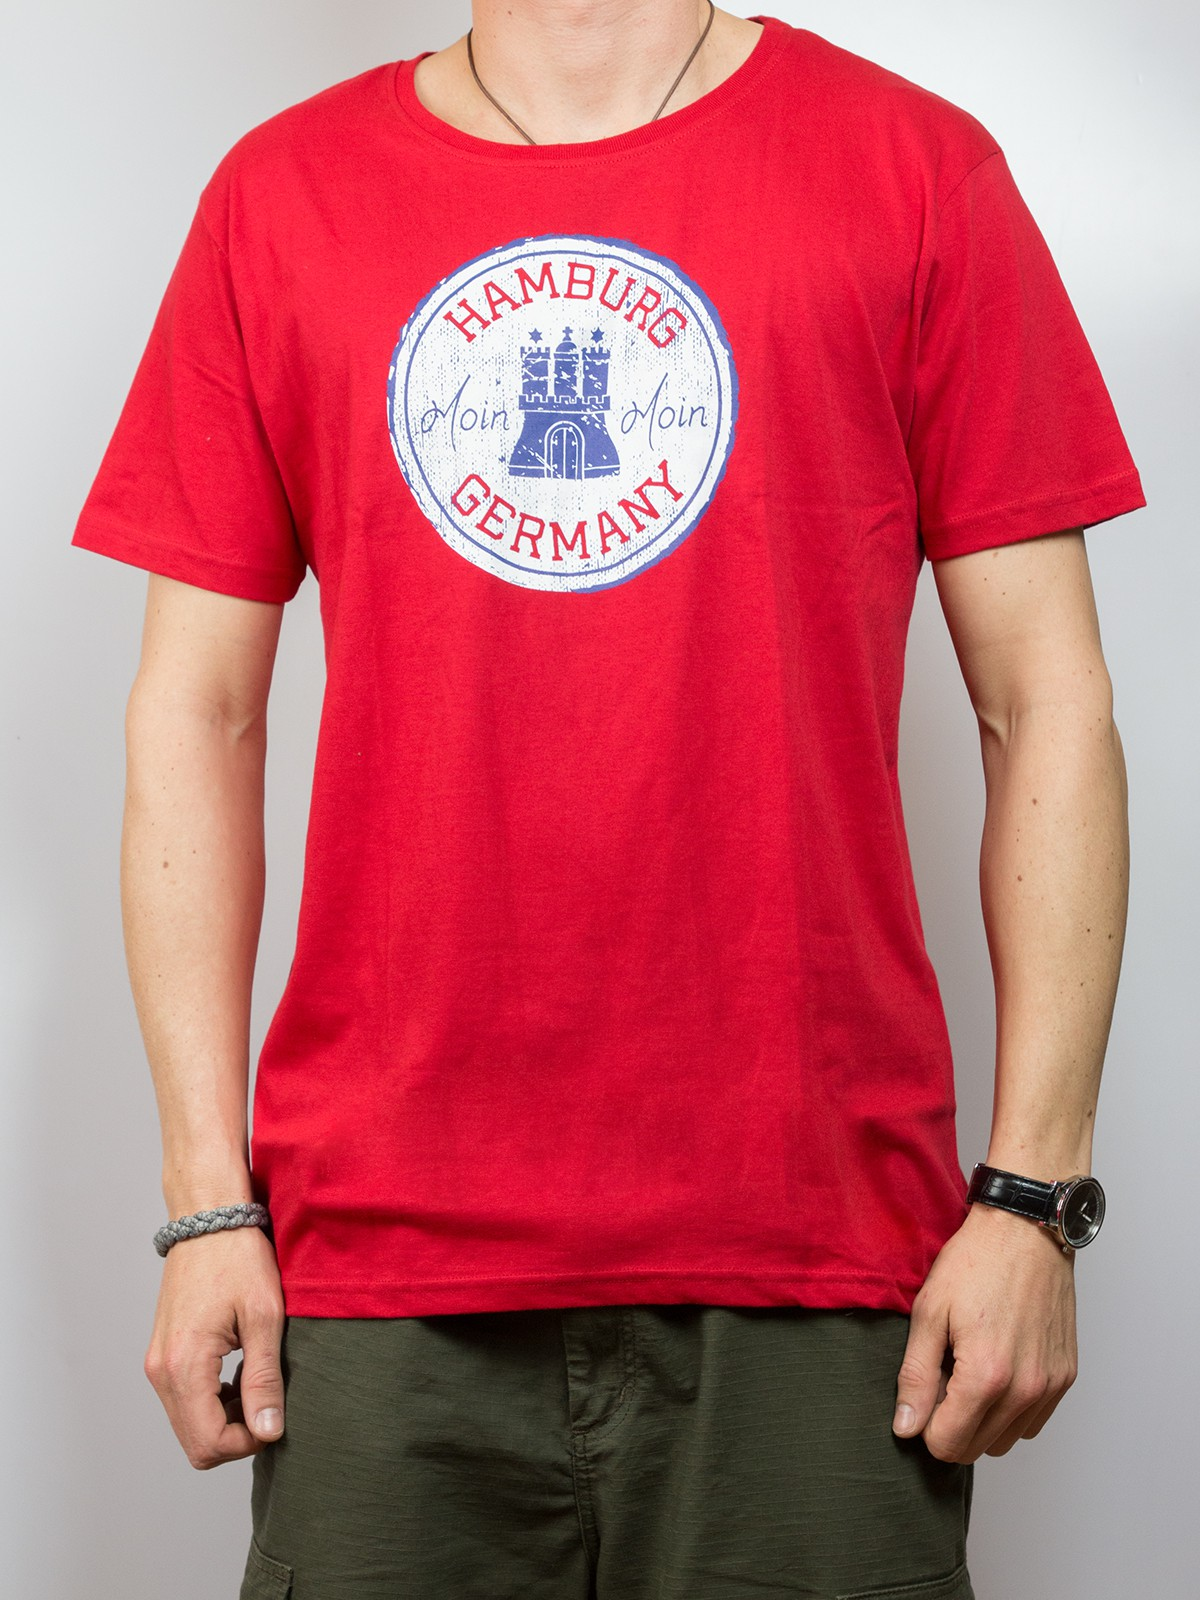 "T-Shirt ""Hamburg Germany moin moin"""